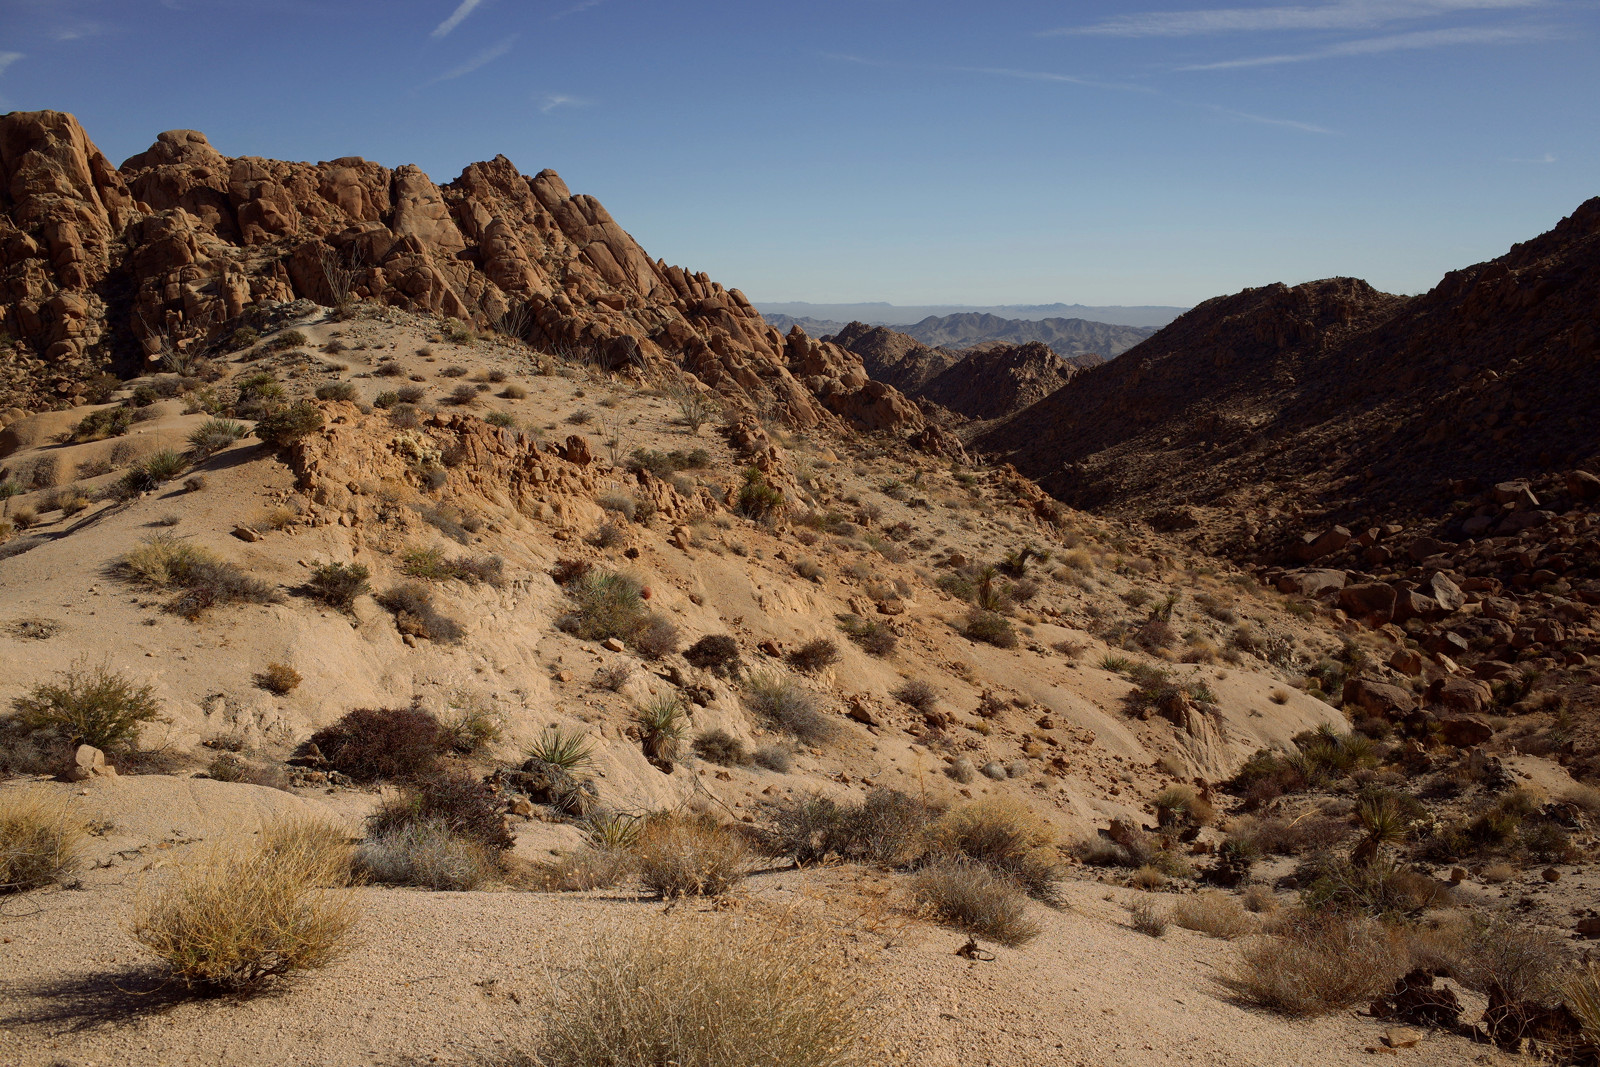 Desert vista from just above Lost Palms Canyon in Joshua Tree National Park